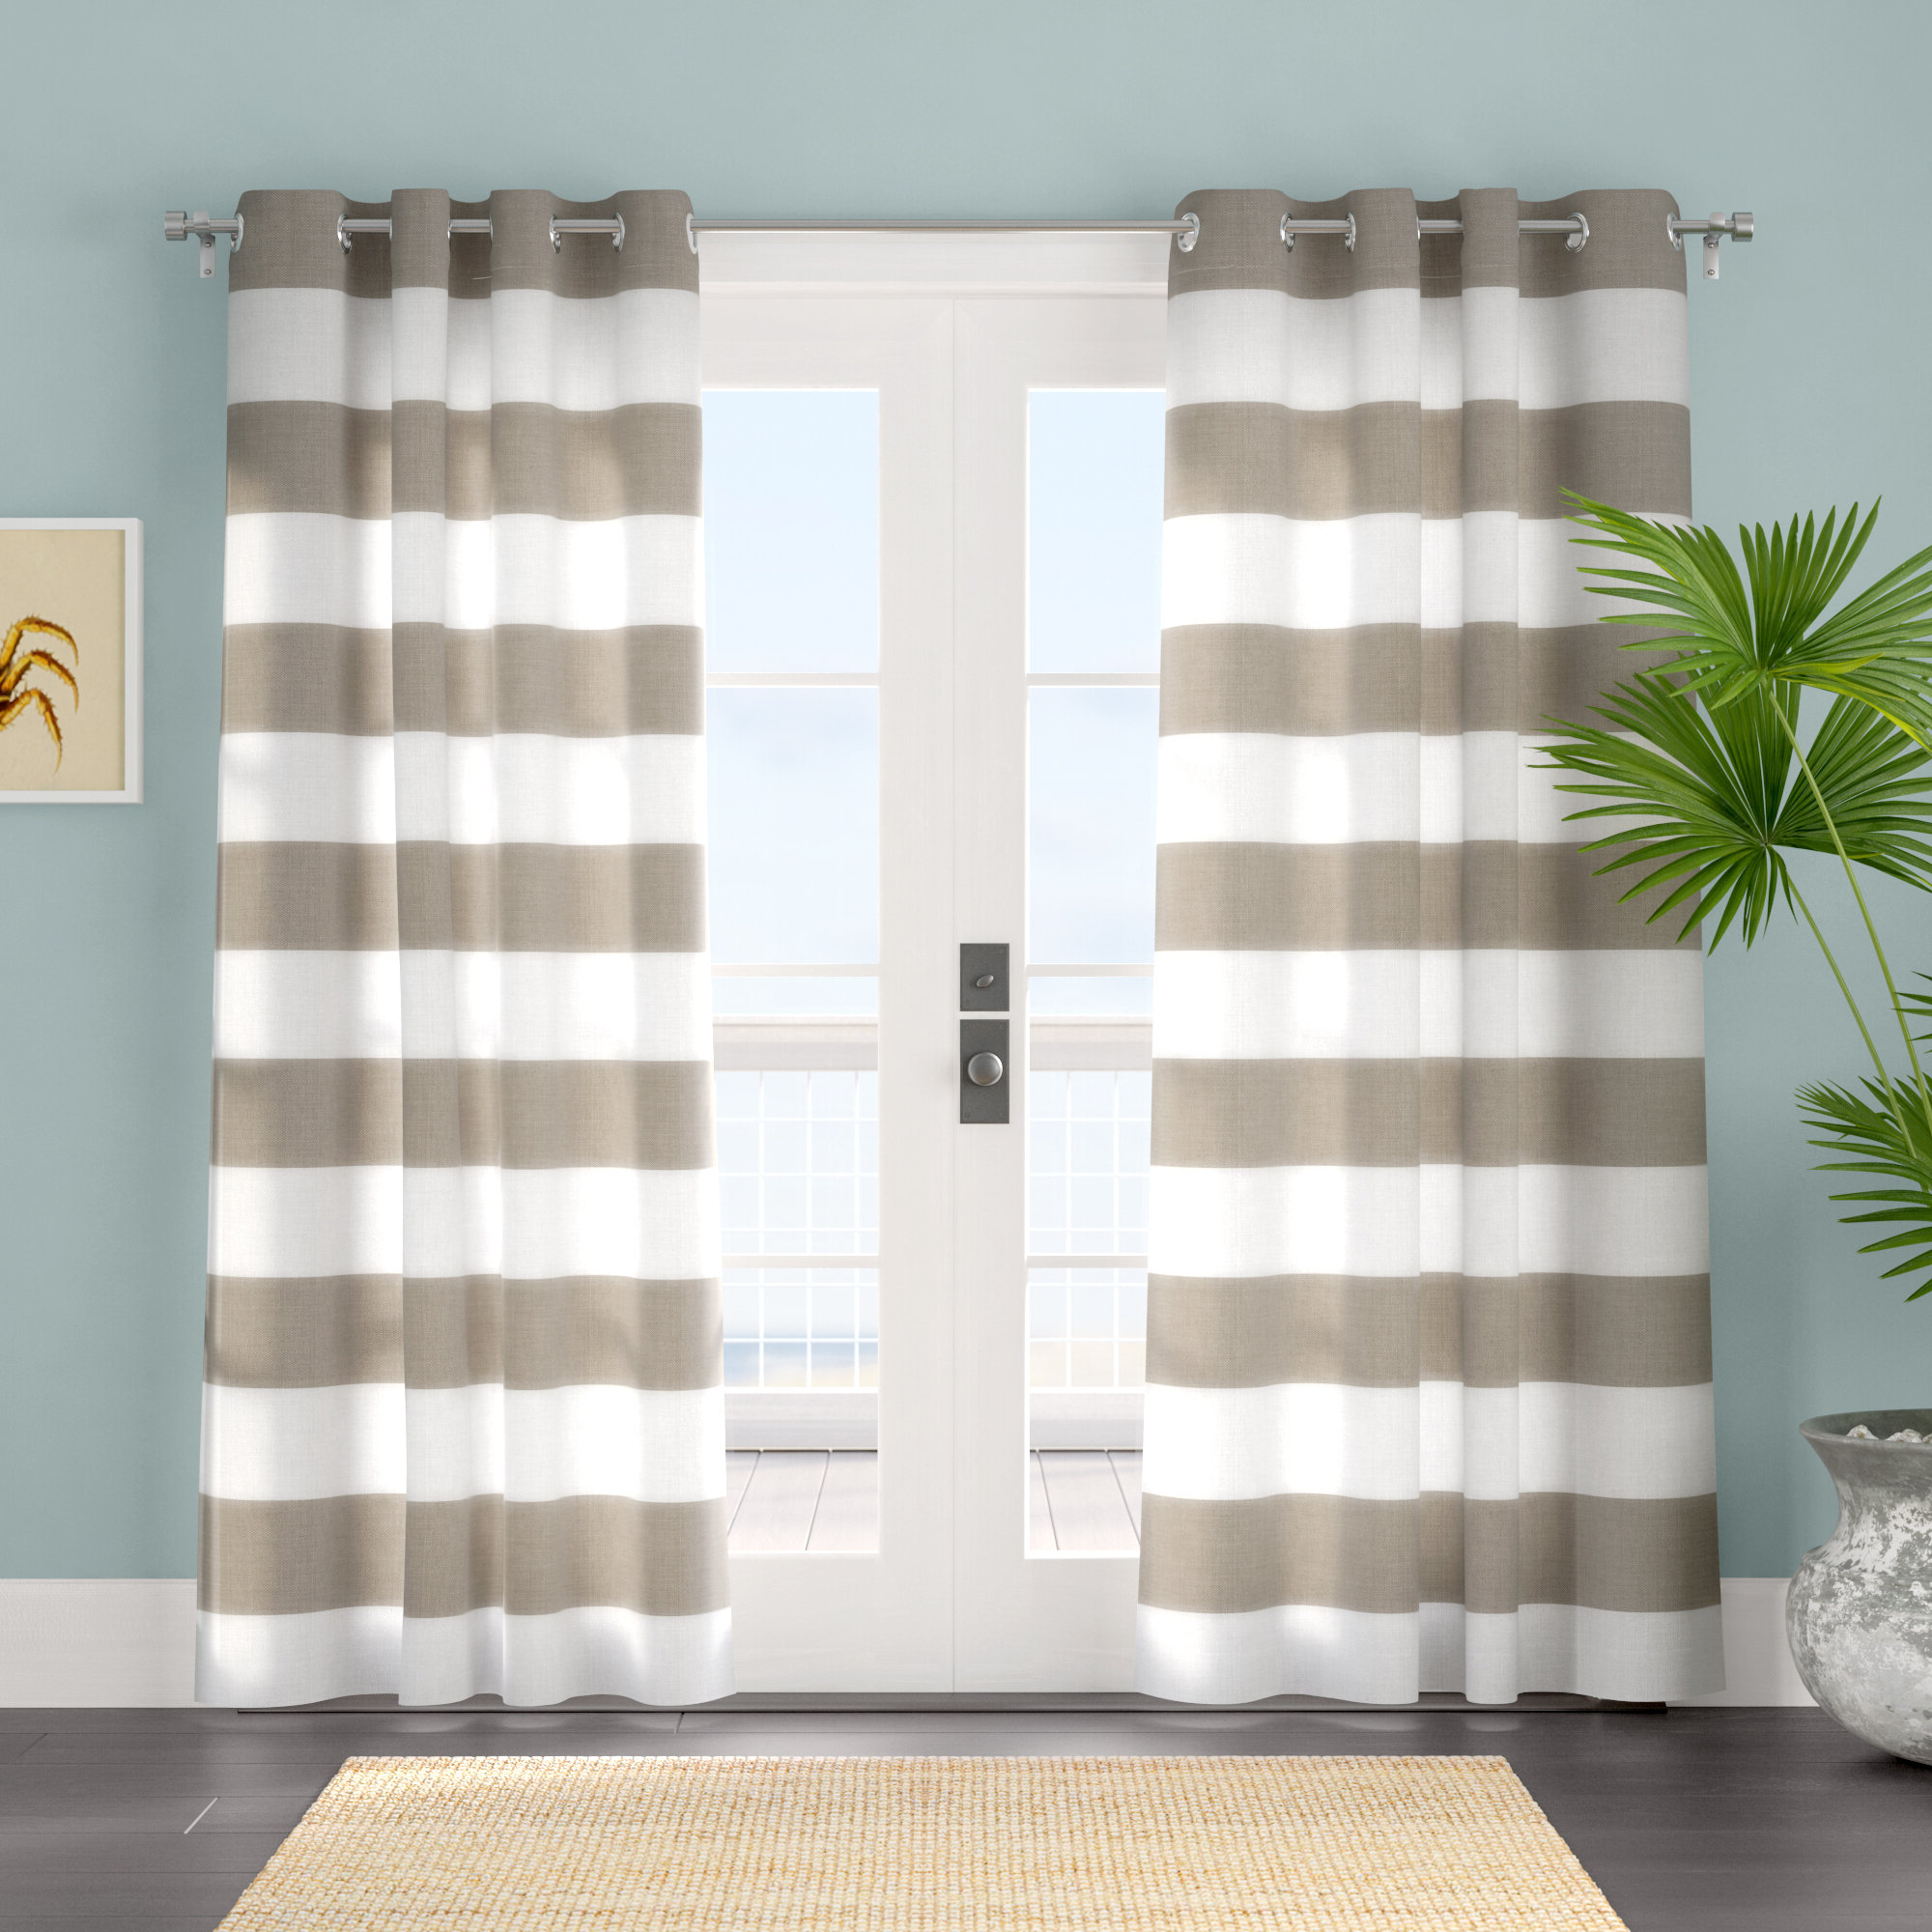 Plant City Striped Room Darkening Grommet Curtain Panels Pertaining To Current Grommet Room Darkening Curtain Panels (View 18 of 20)